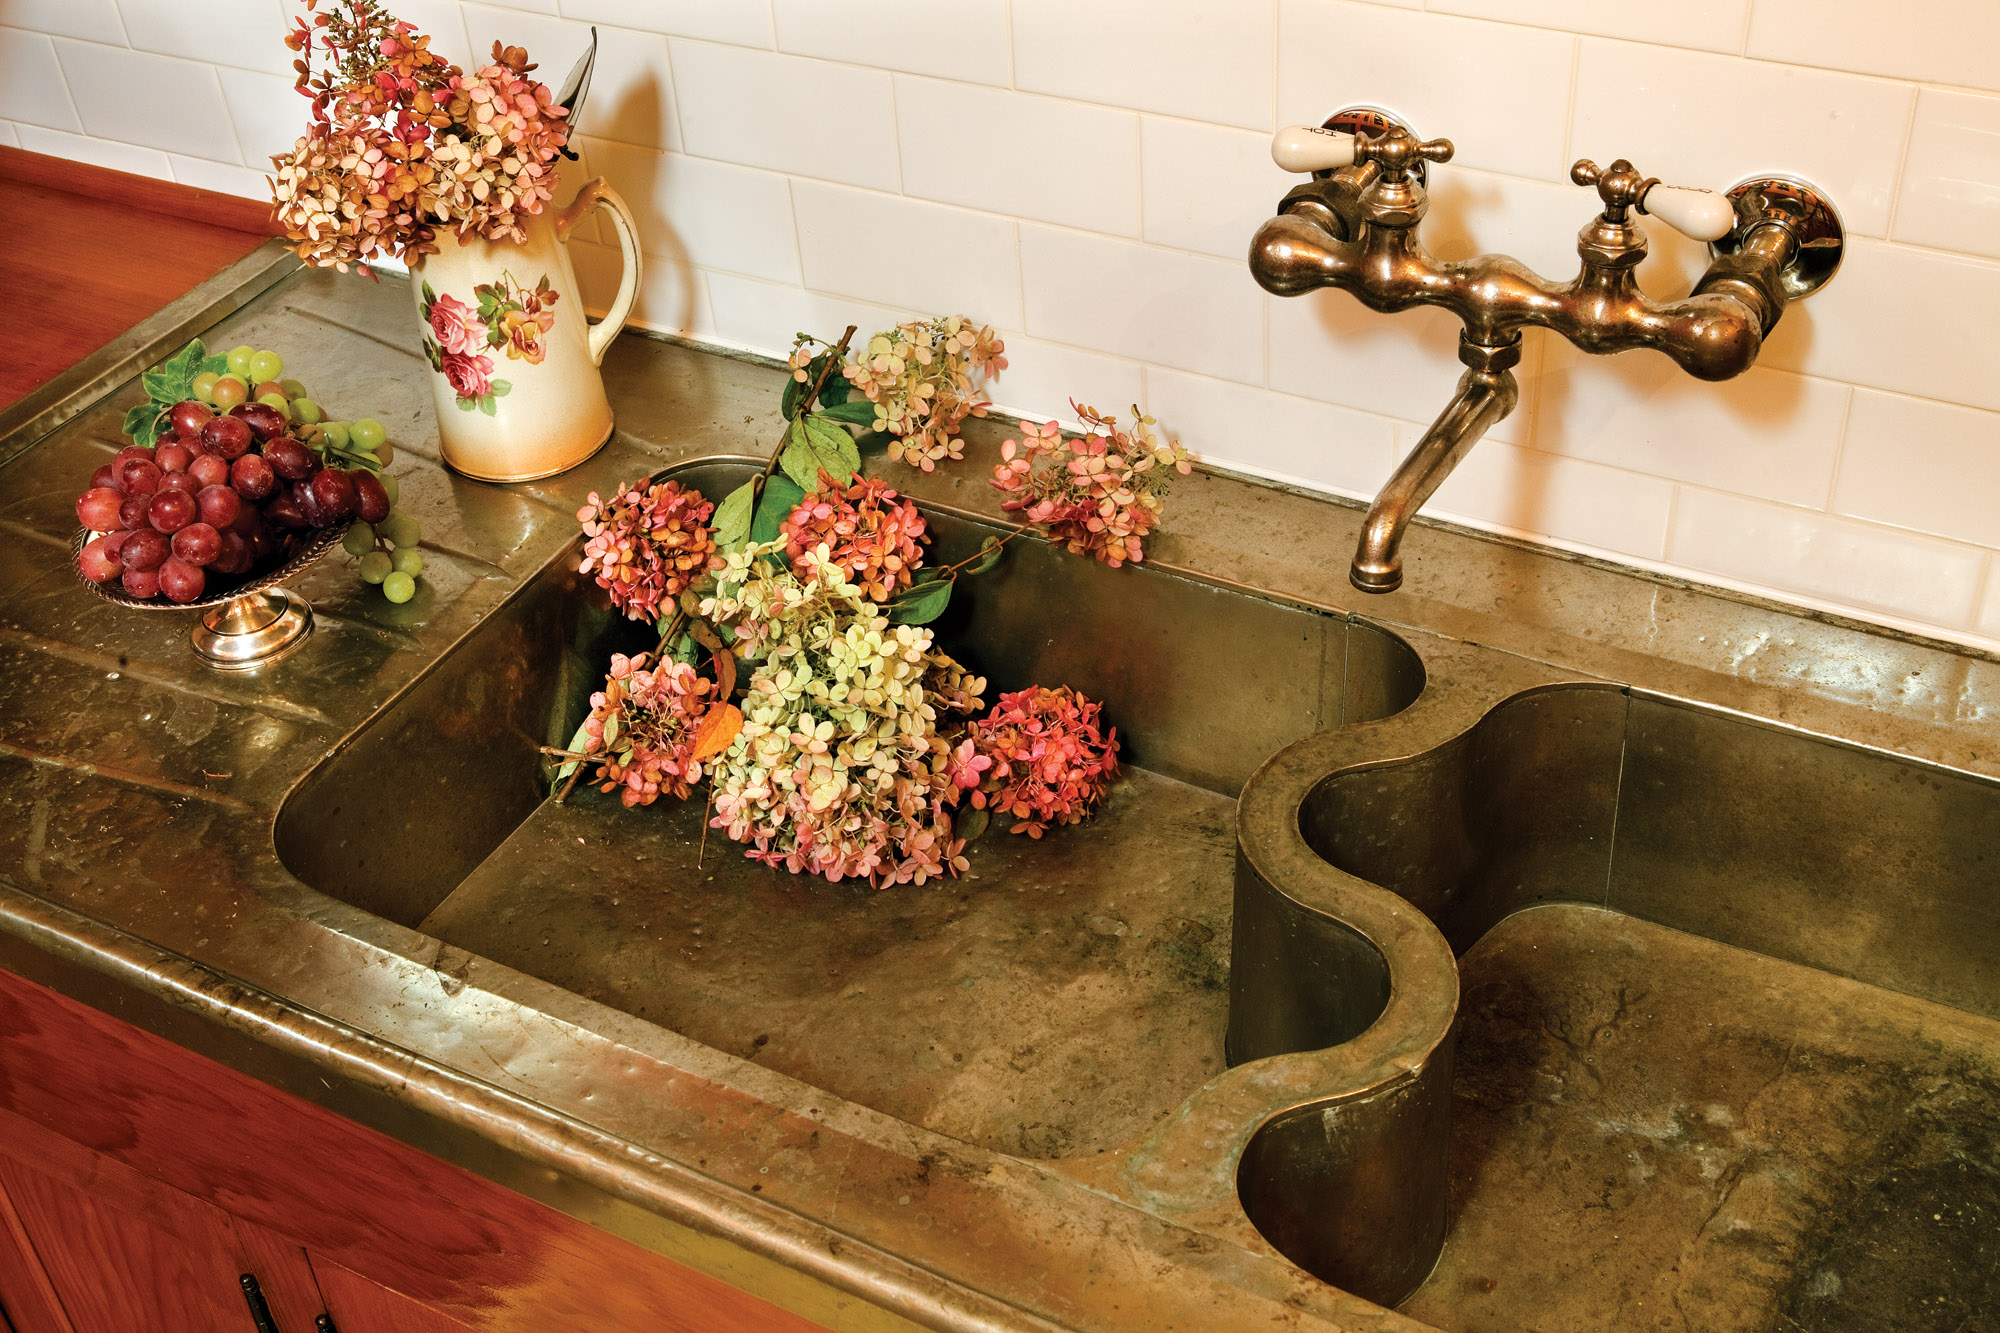 The antique sink of German silver (a copper–nickel–zinc alloy) has dents and patina.